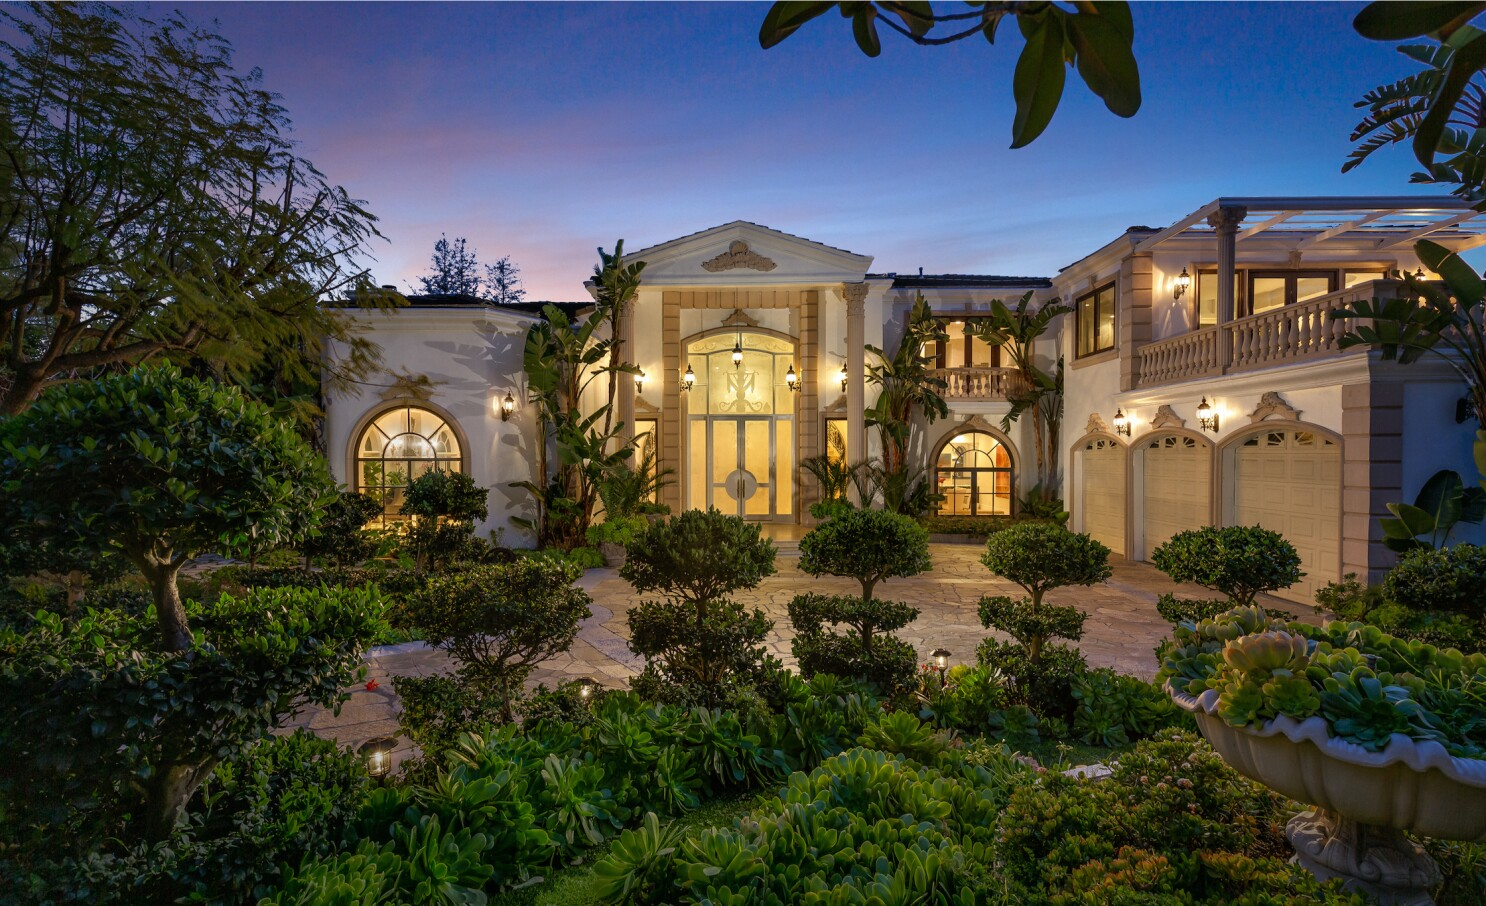 Married Olympians Drop 6 1 Million On Bel Air Mansion Los Angeles Times